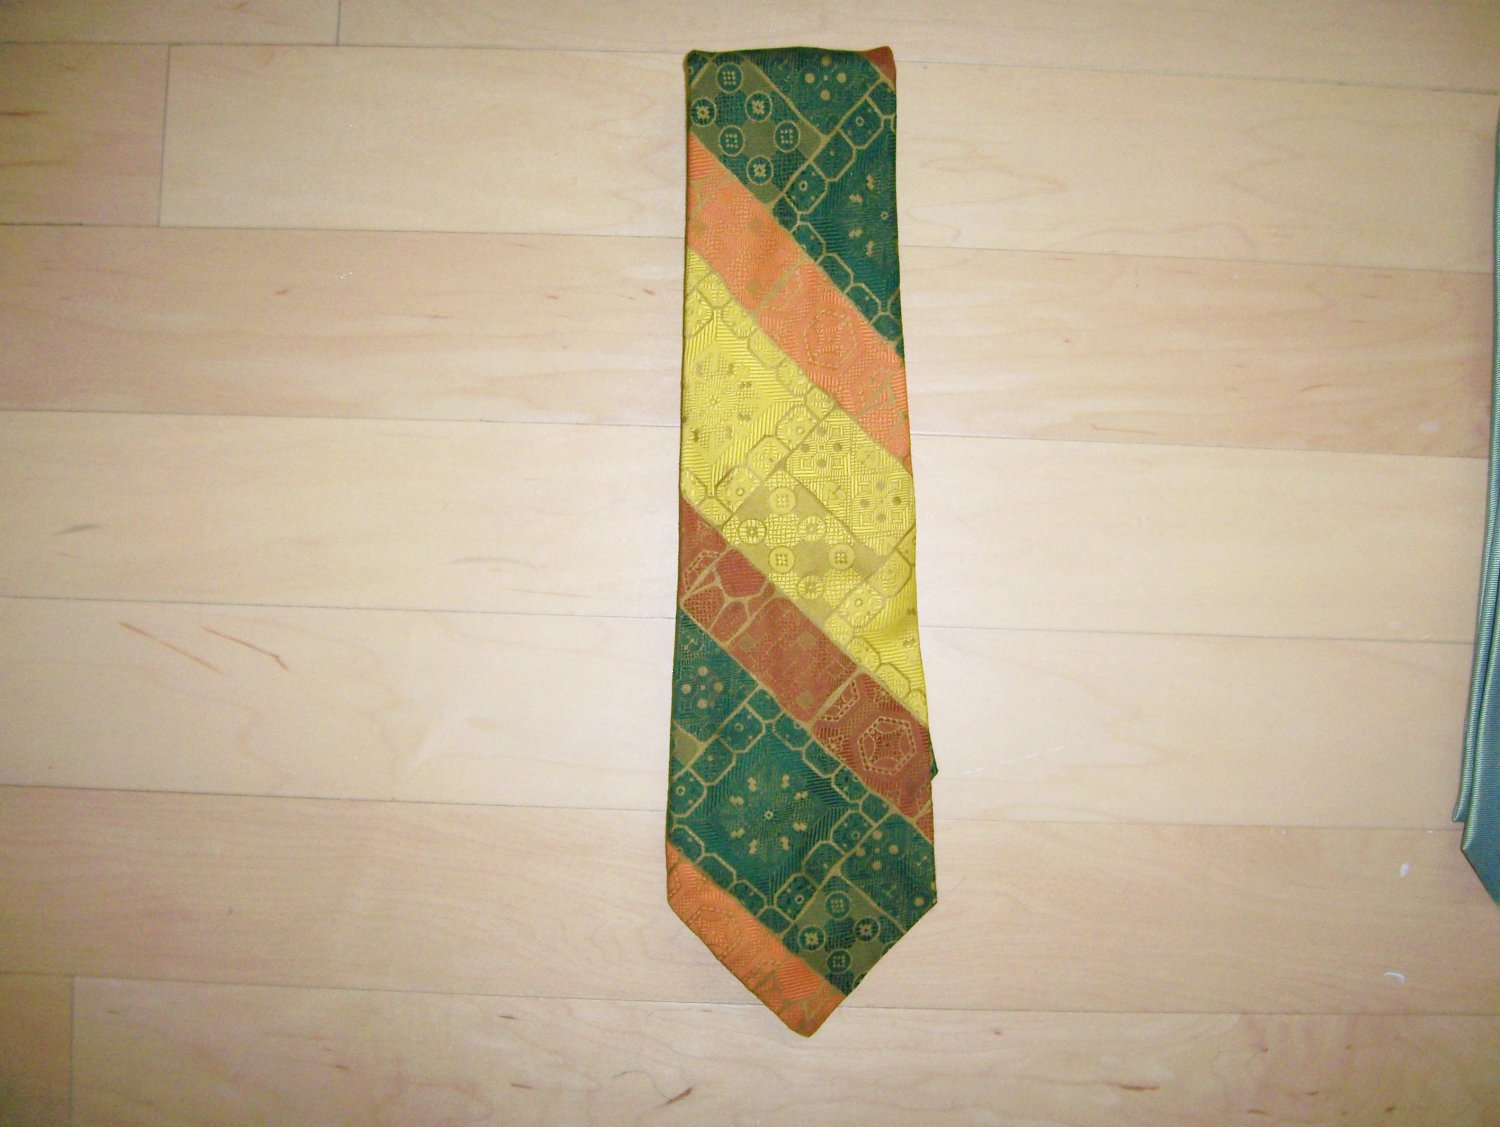 Tie Brown/Orange And Gold By Lord Copley  BNK1493